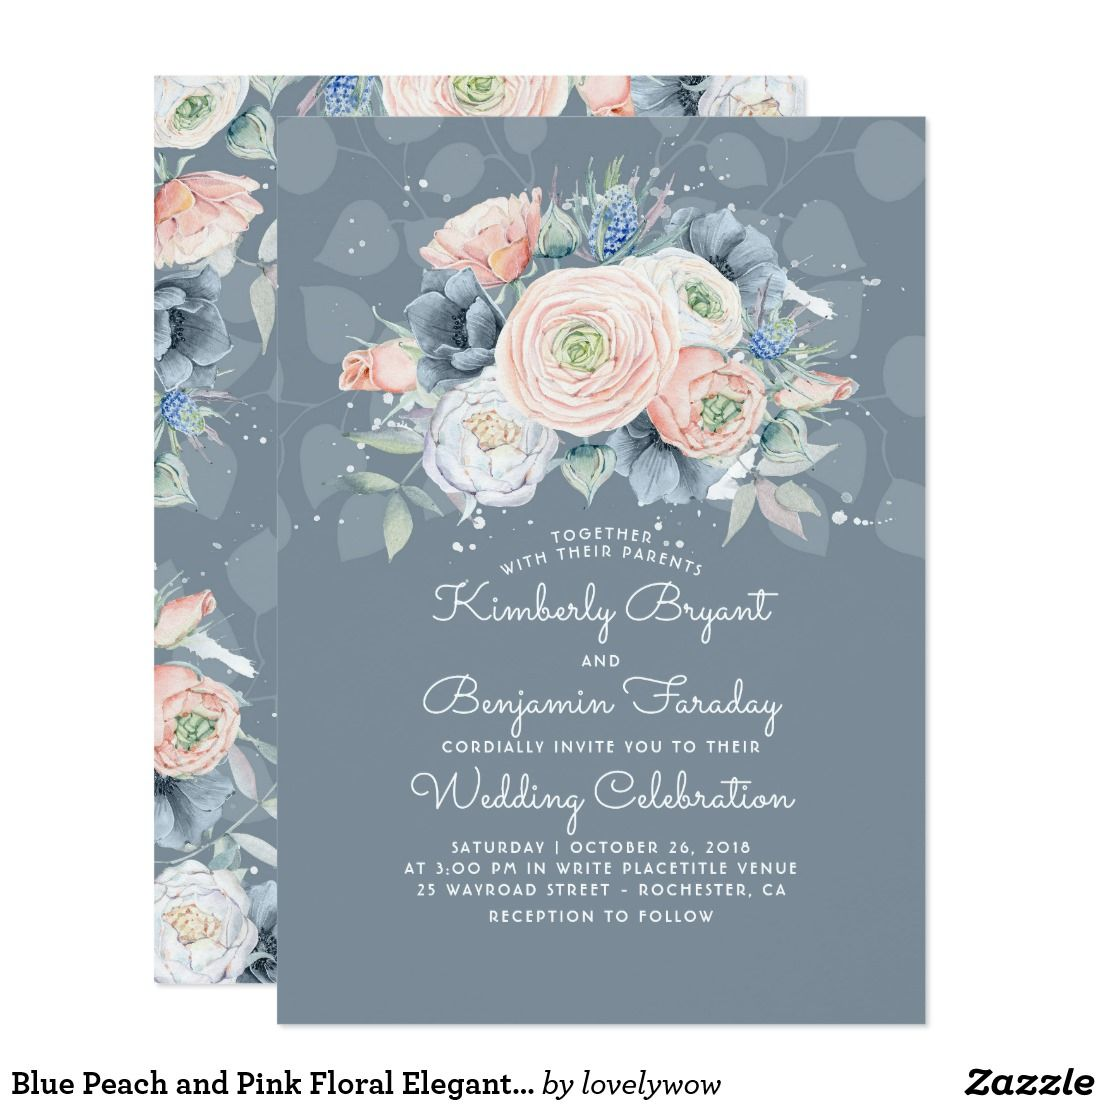 Blue peach and pink floral elegant wedding invitation in